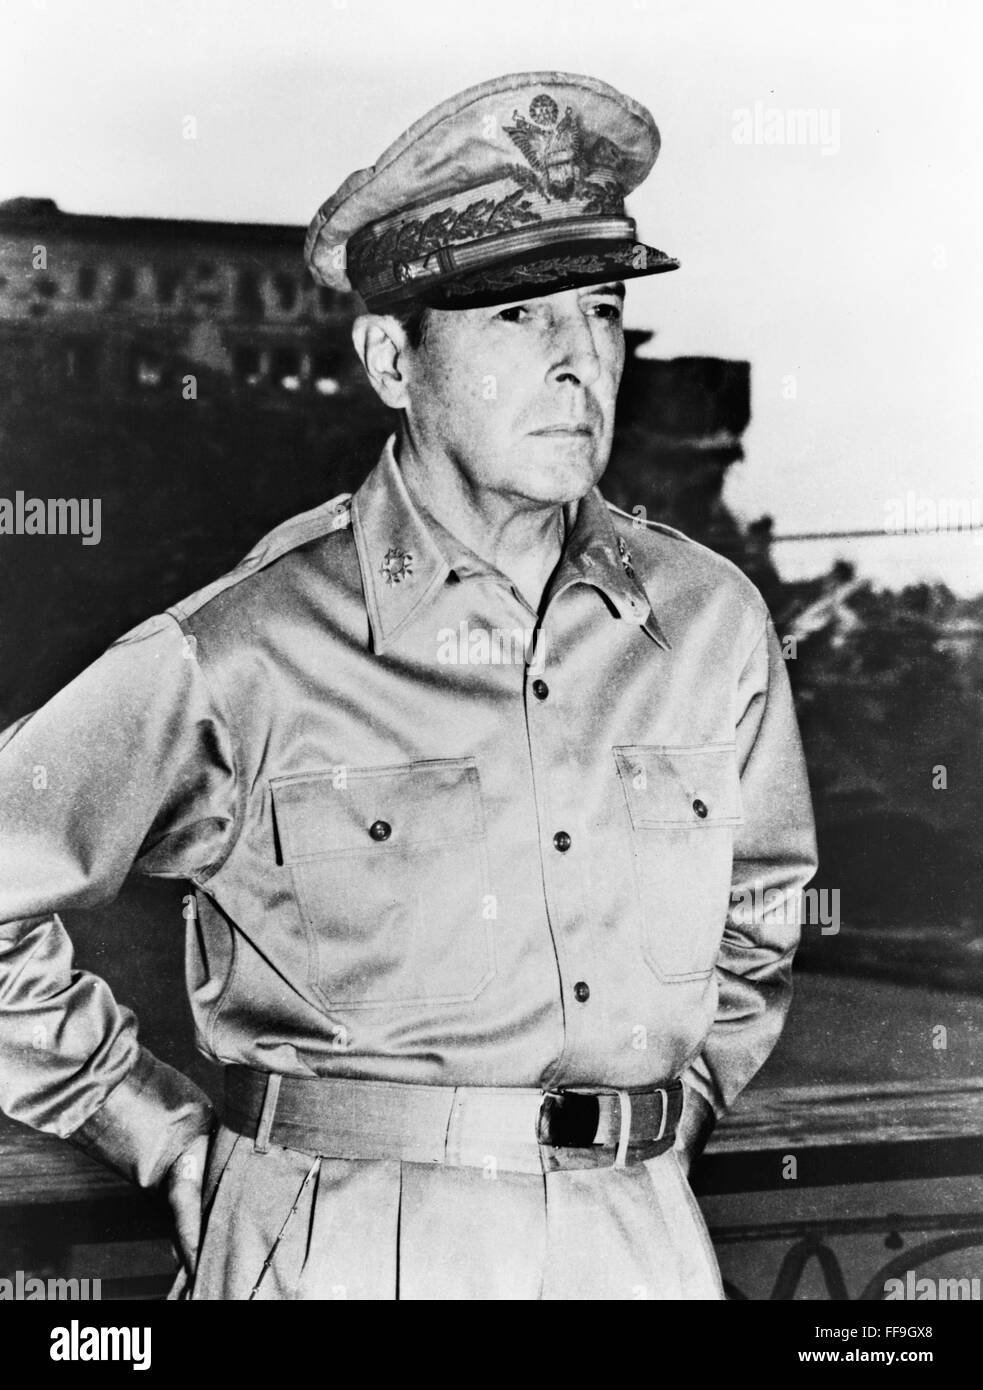 Douglas MacArthur. Portrait of  WWII American commander, General Douglas Macarthur, 24th August 1945. - Stock Image